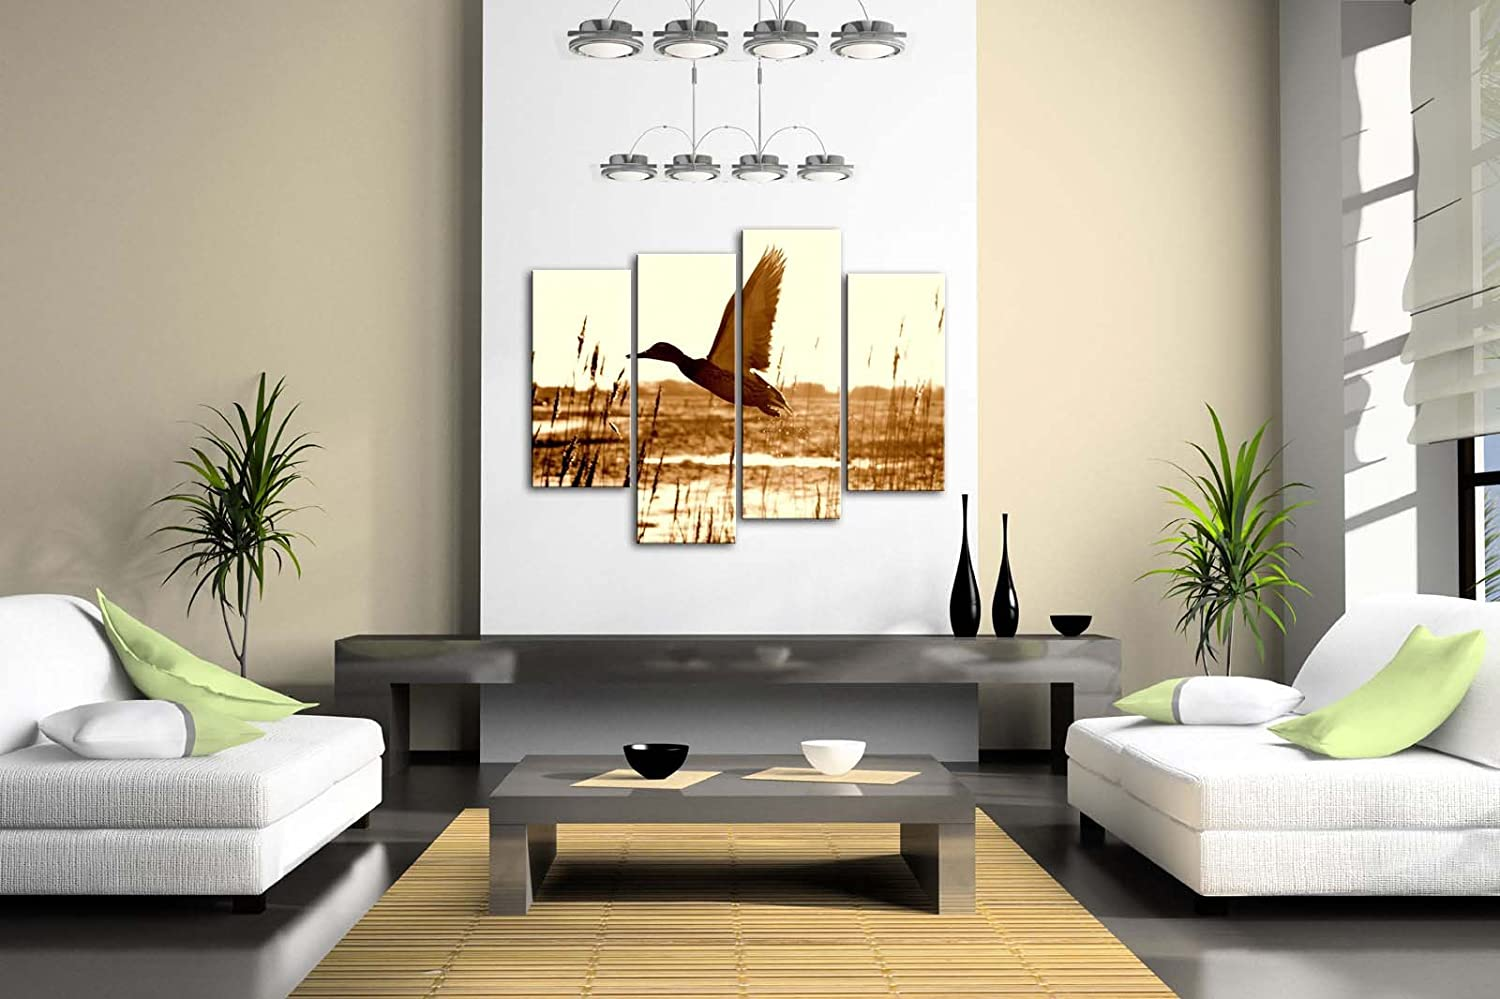 Brown Duck Fly Upon River Wall Art Painting Pictures Print On Canvas Animal The Picture For Home Modern Decoration